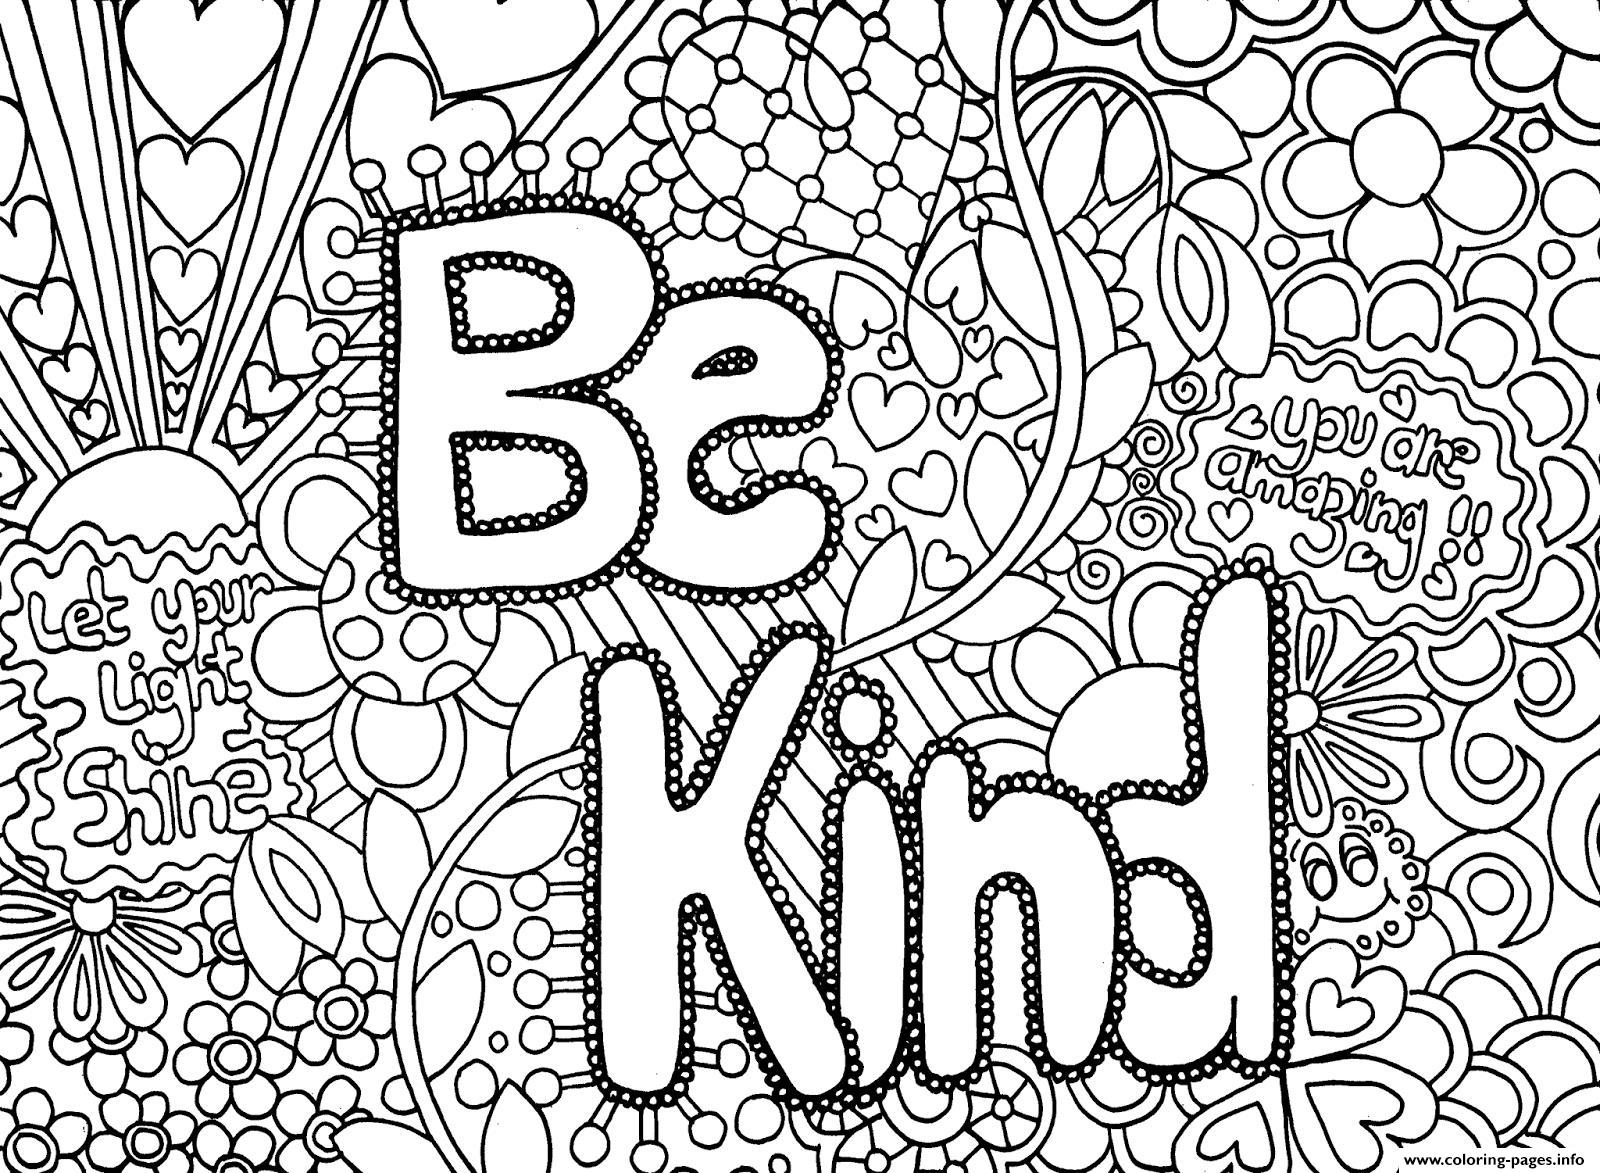 Difficult Advanced Hard Adult Be King Message Coloring Pages